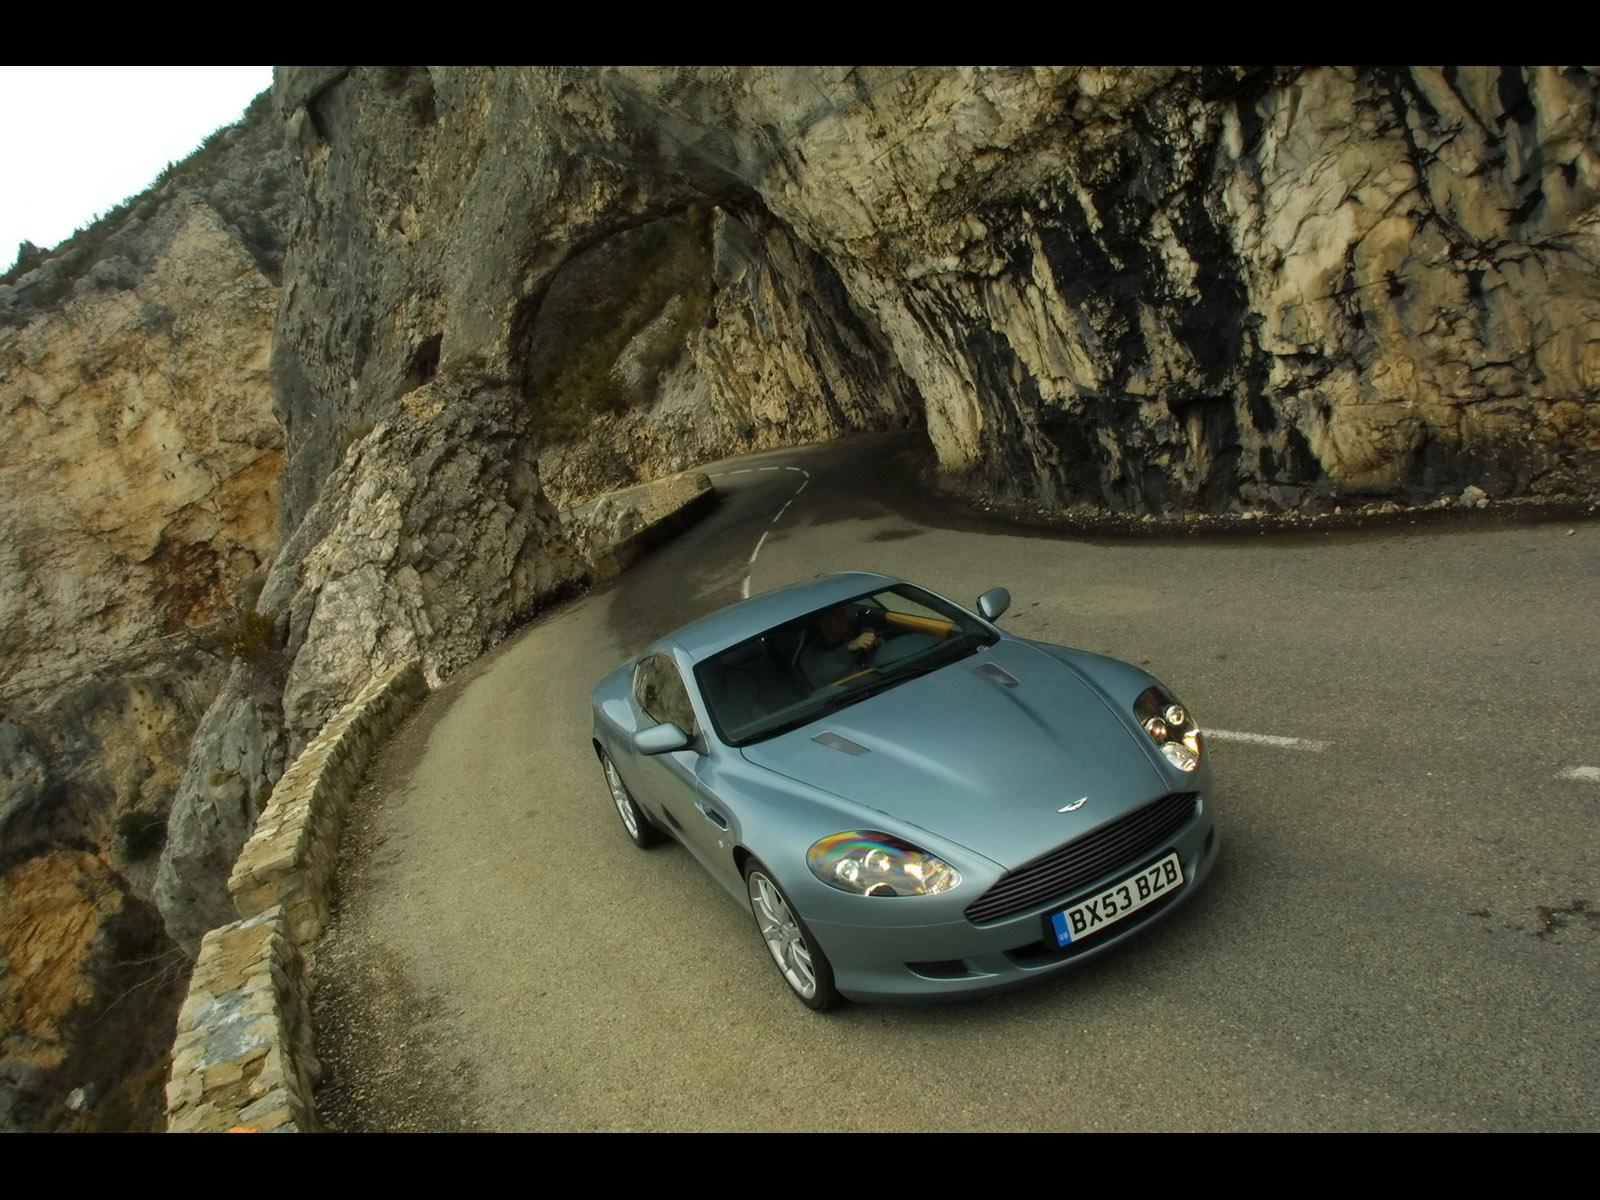 Aston Martin DB9 photo 18860